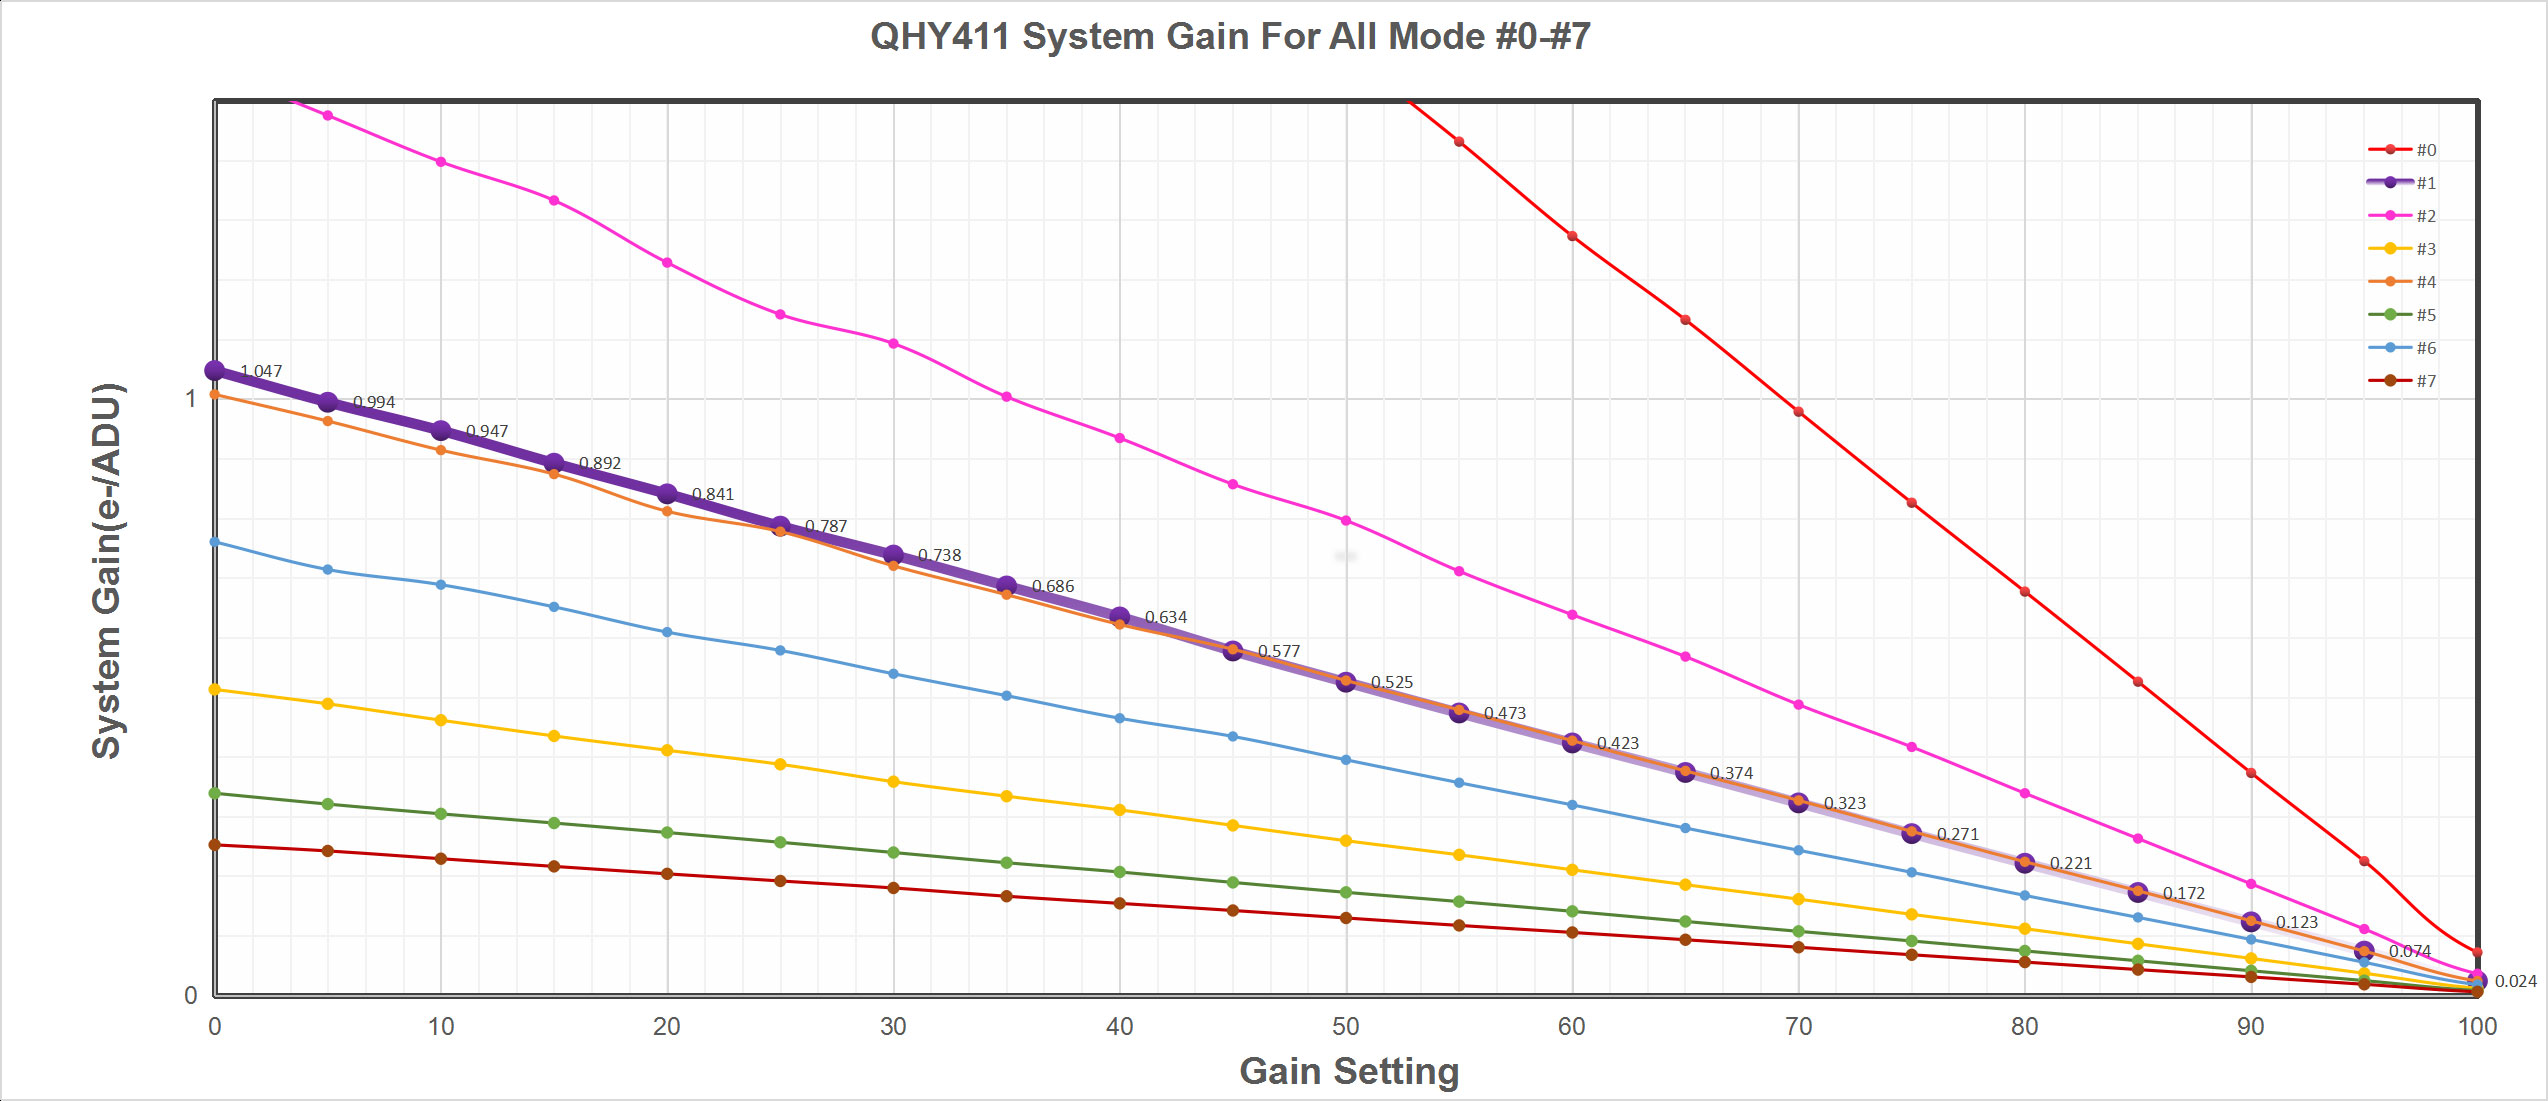 QHY411 System Gain For All Mode